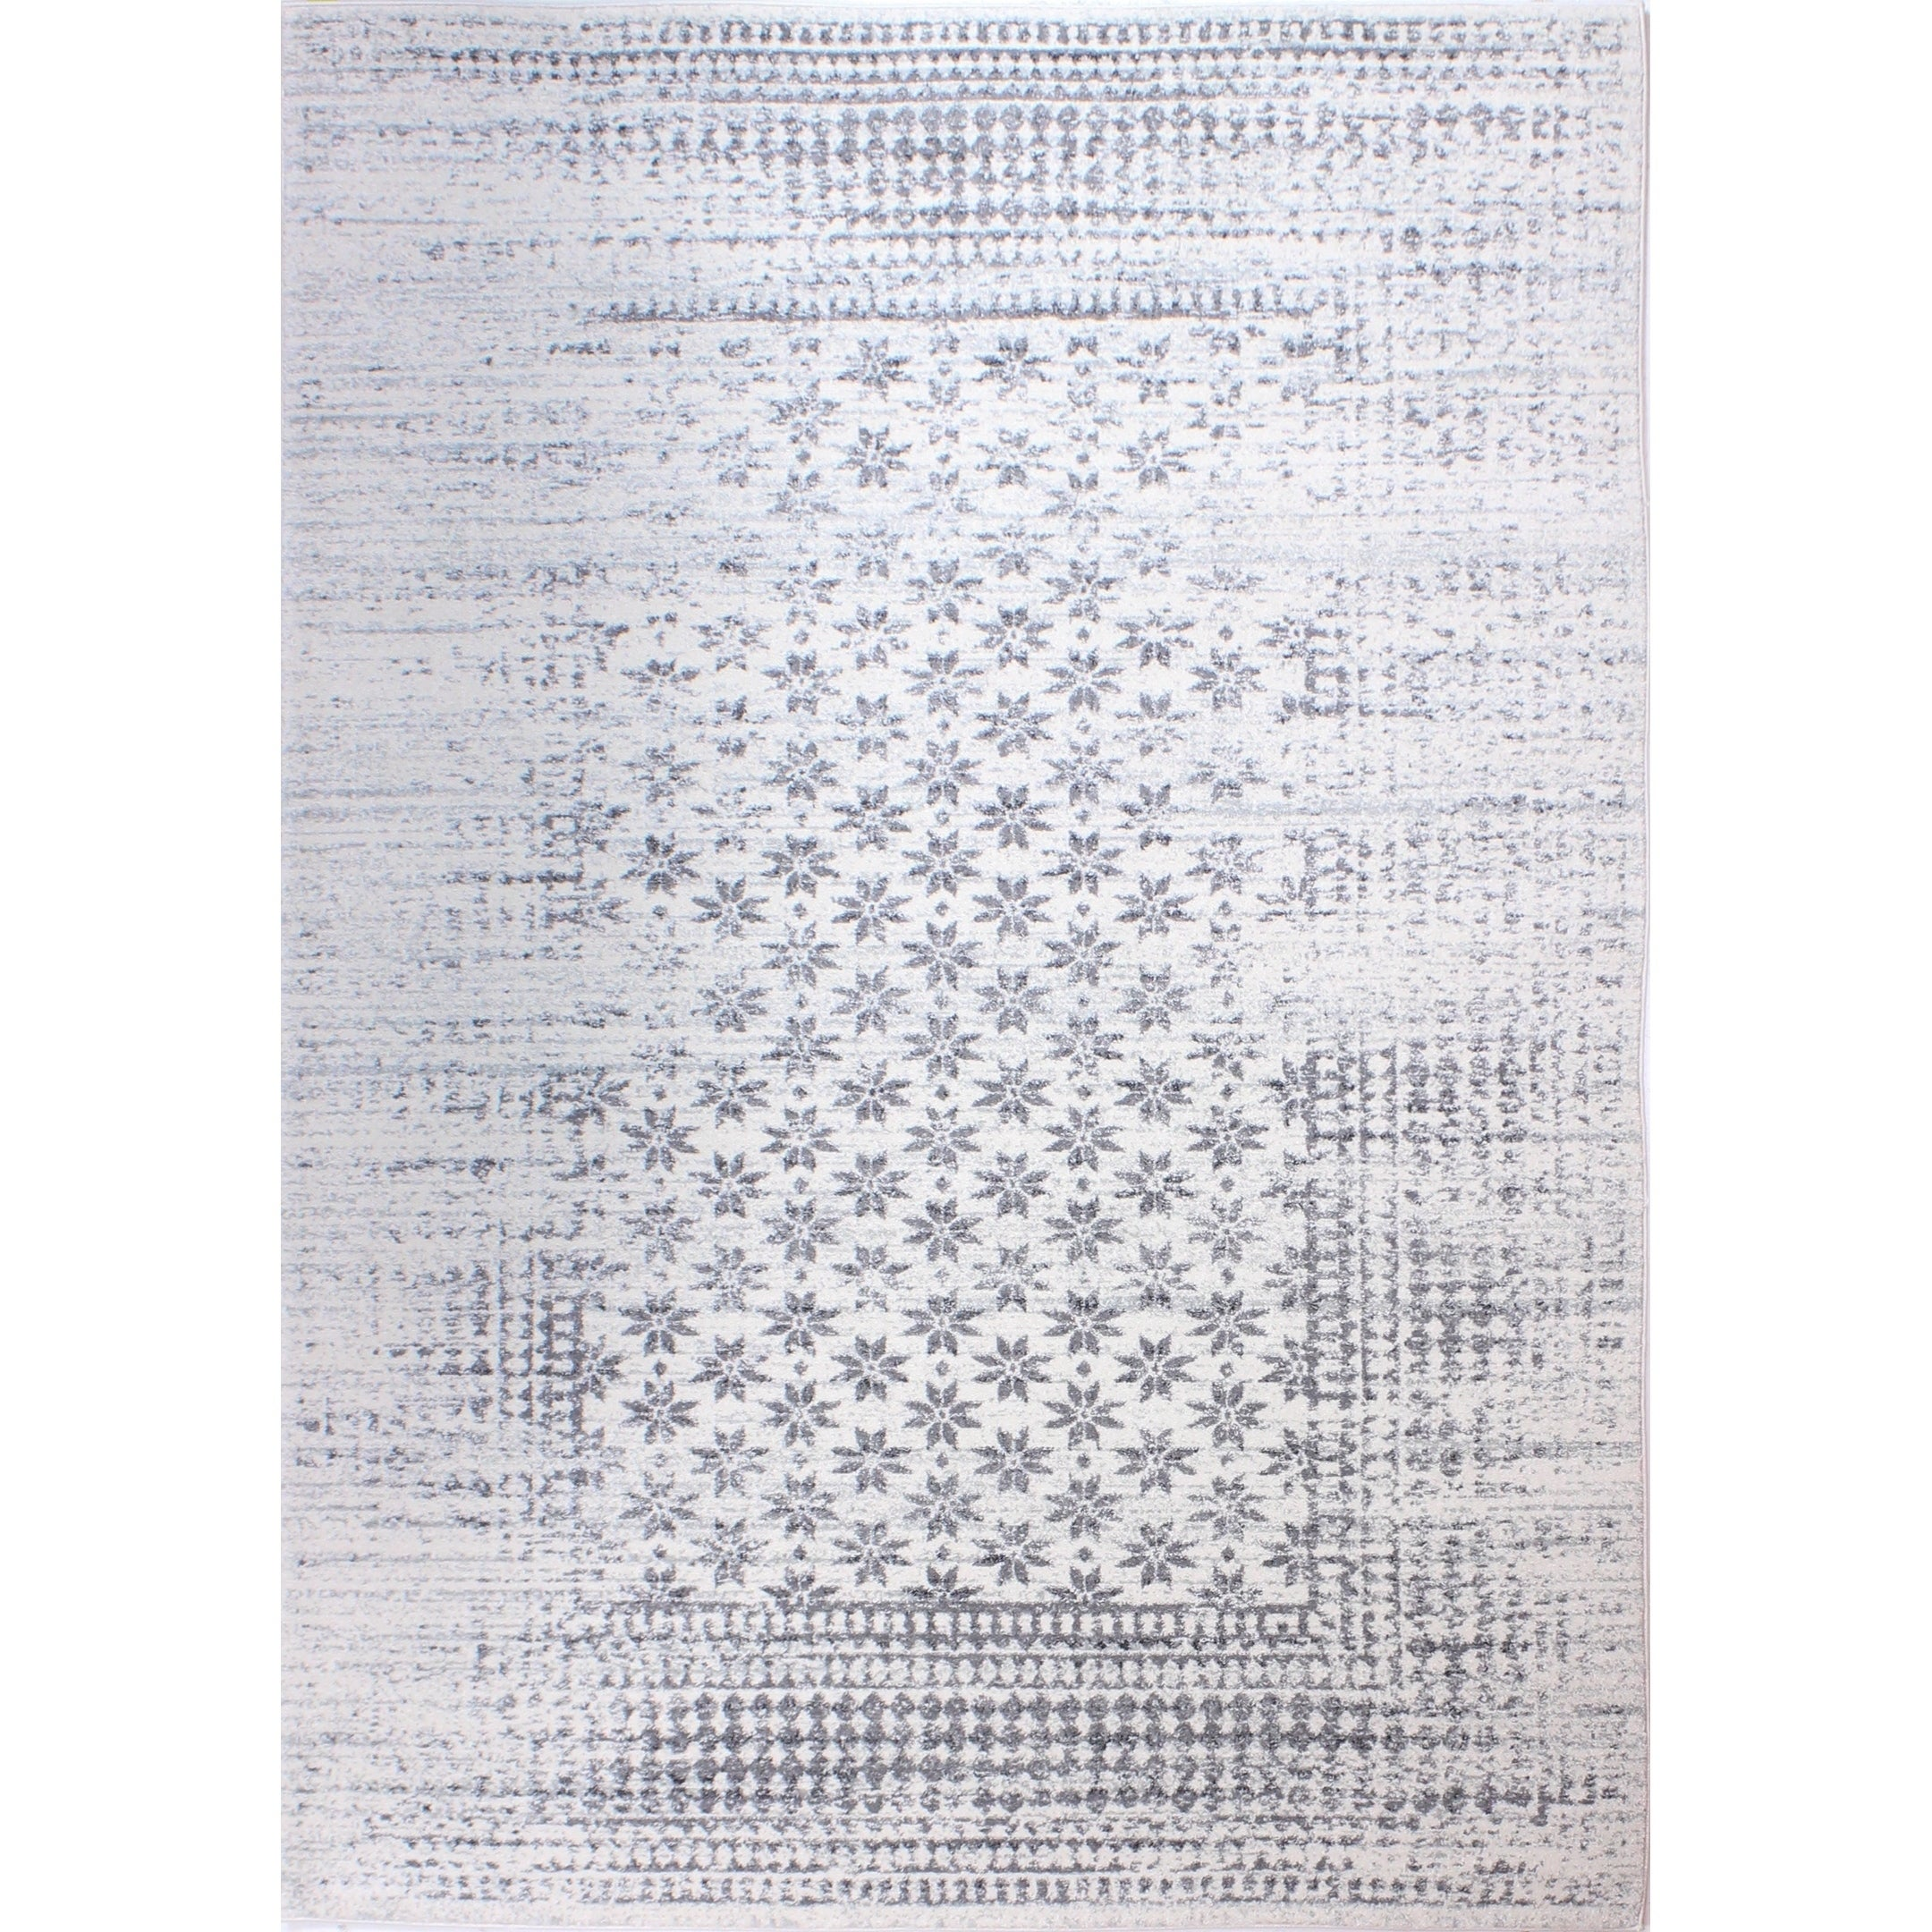 Audrey Ivory Transitional  Area Rug - 5 x 76 (Ivory - 5 x 76)